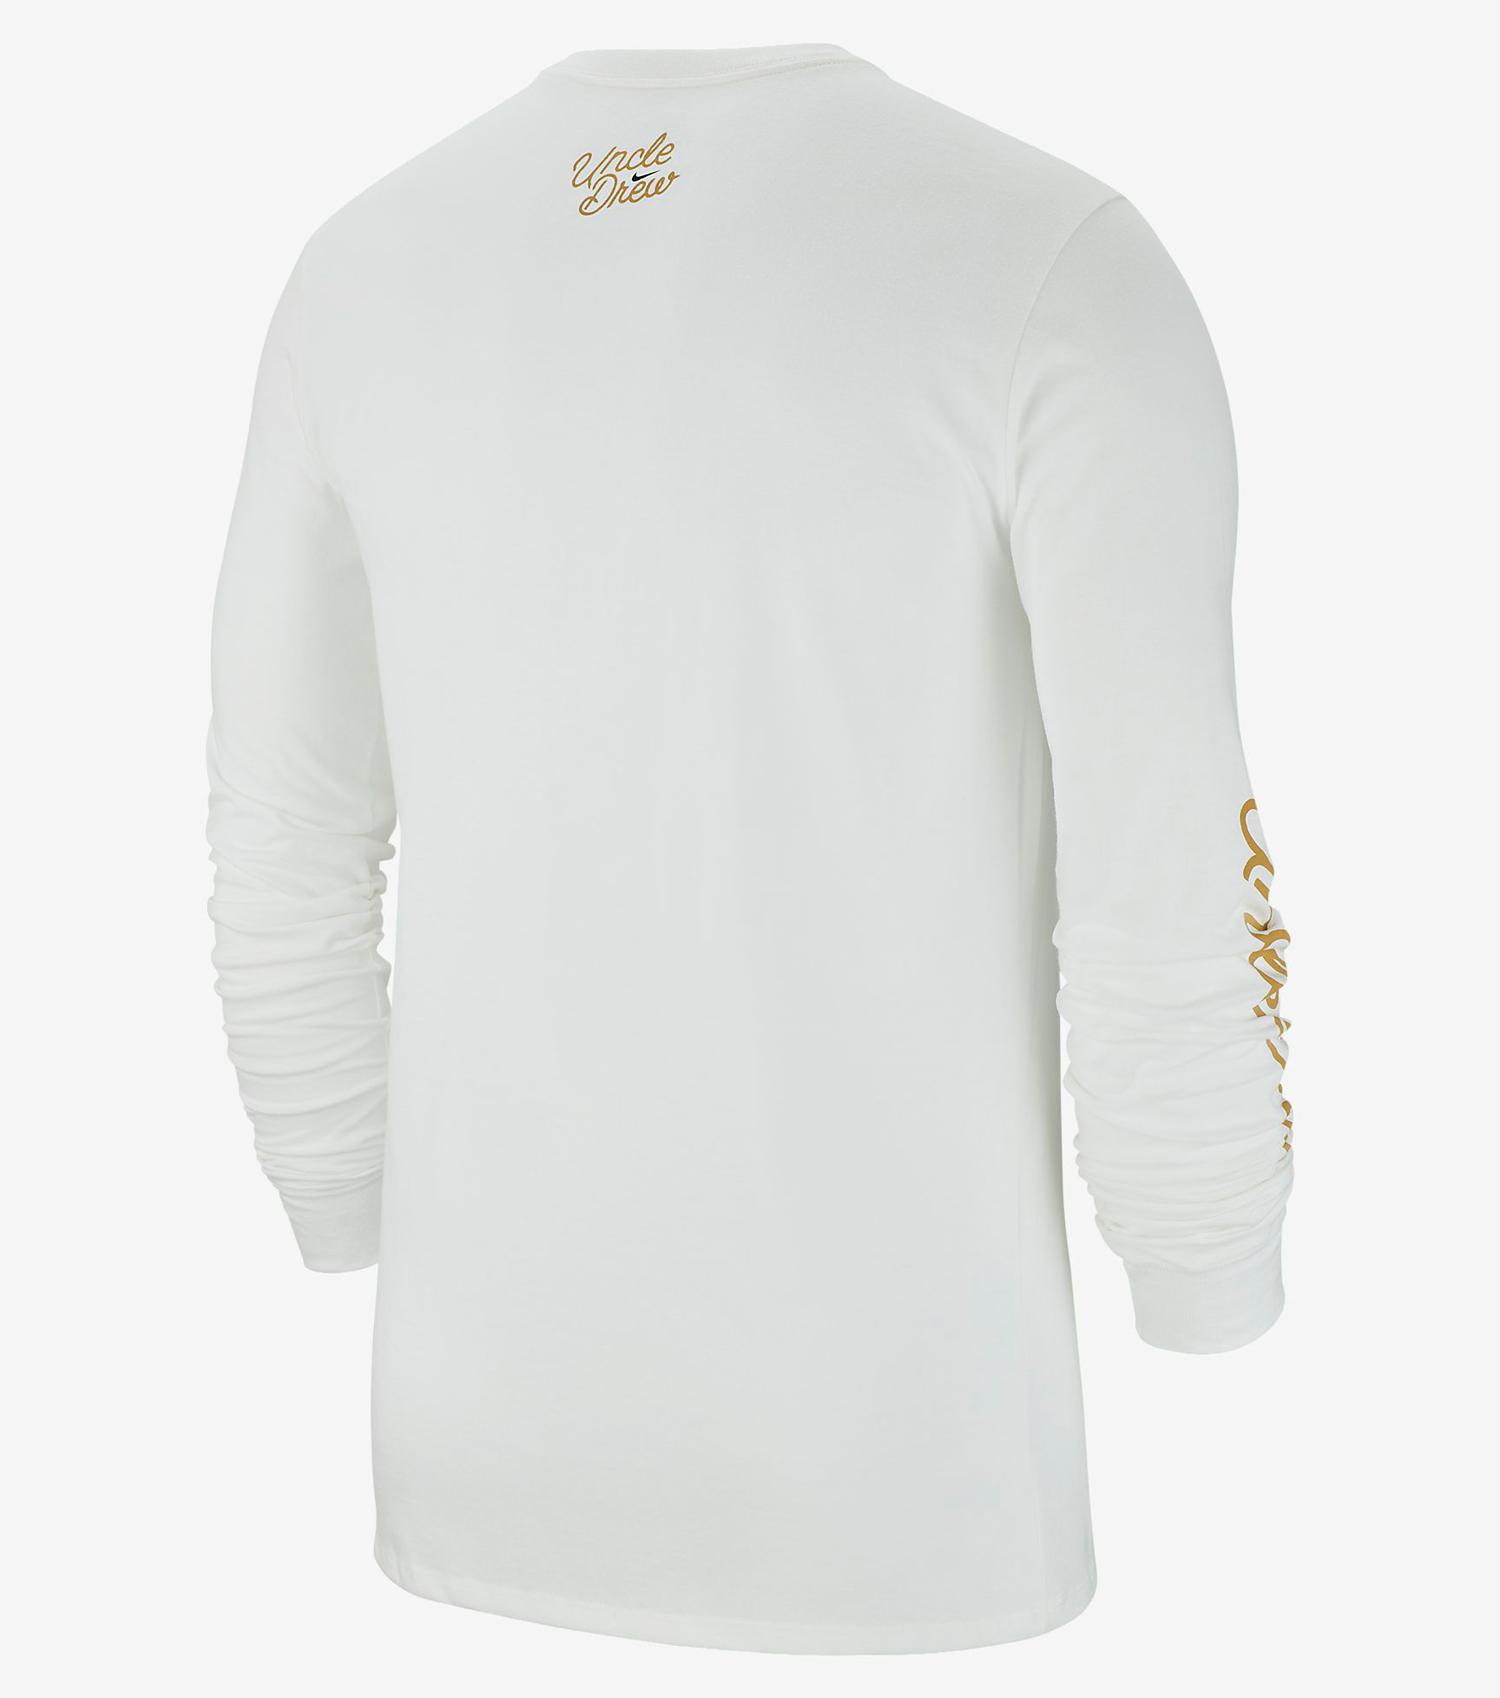 nike-kyrie-4-uncle-drew-long-sleeve-shirt-white-2